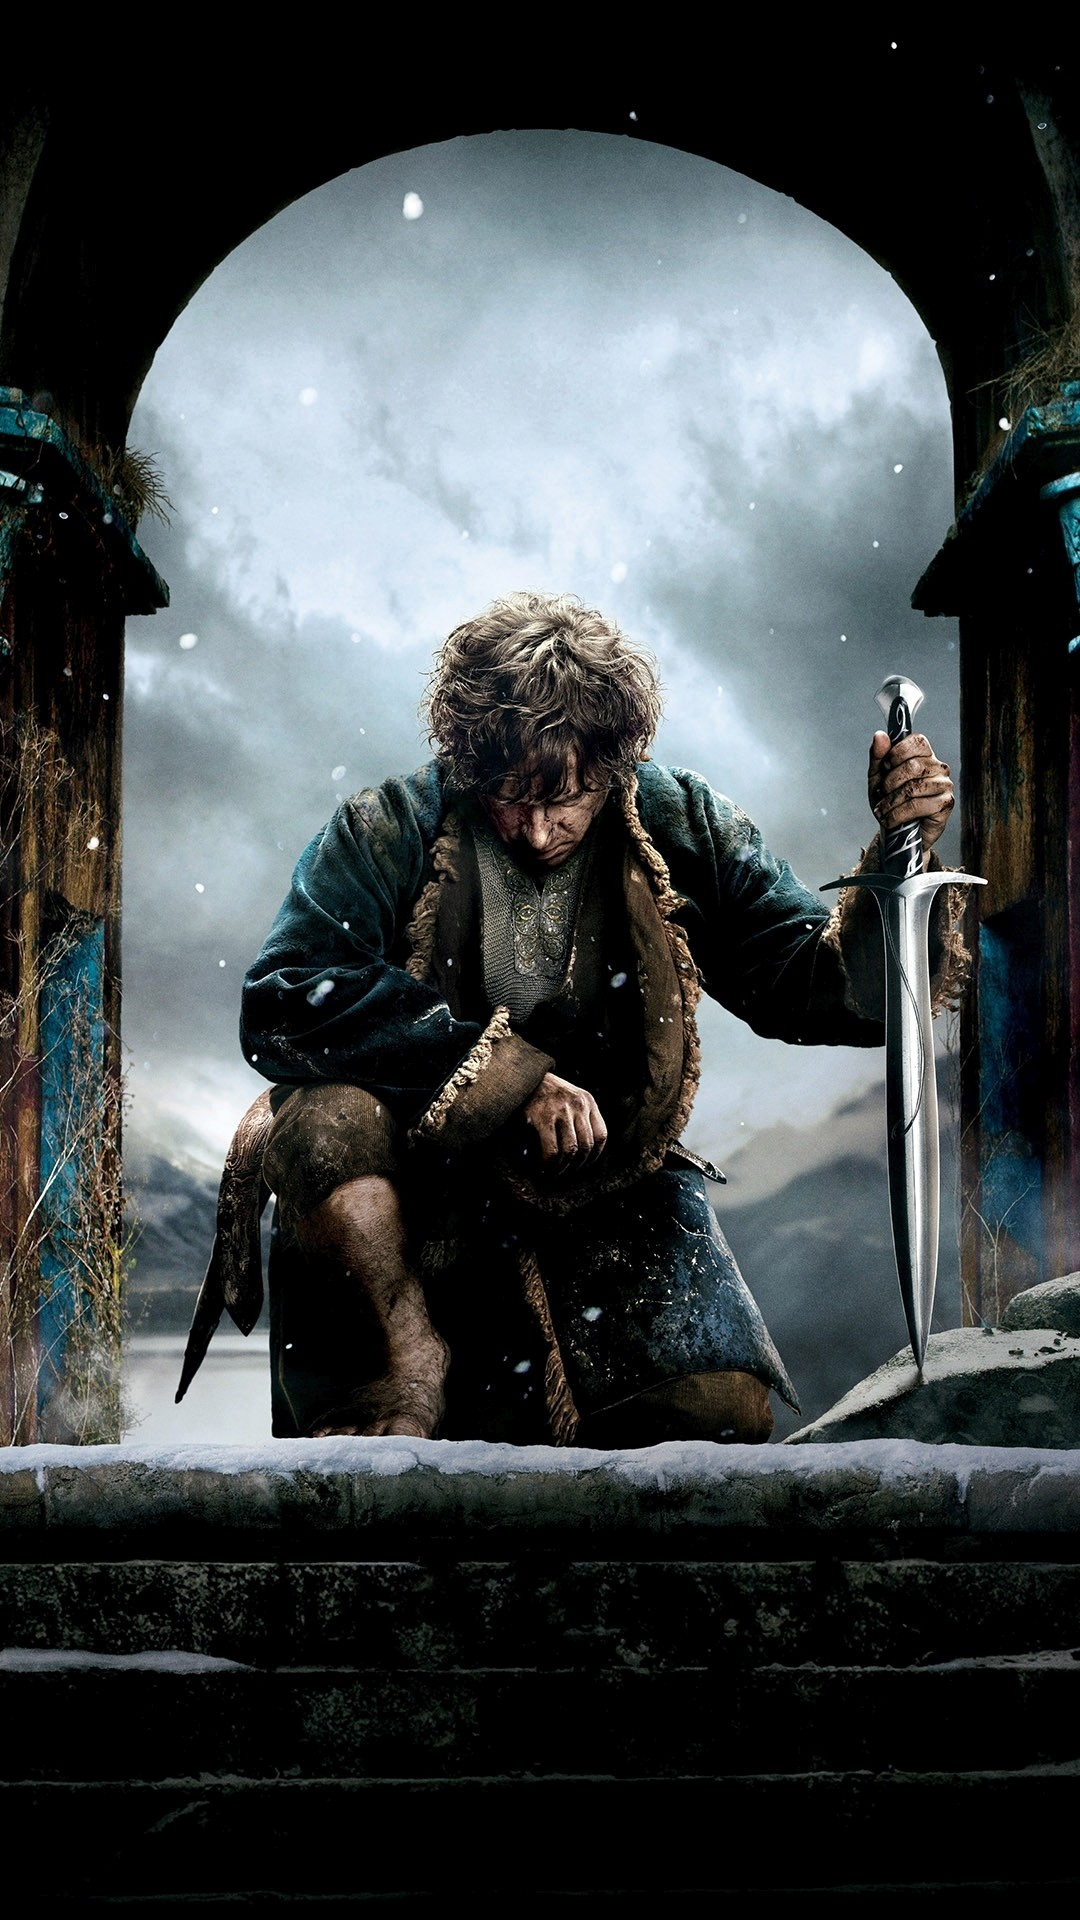 Bilbo with a sword in The Hobbit: The Desolation of Smaug Wallpaper